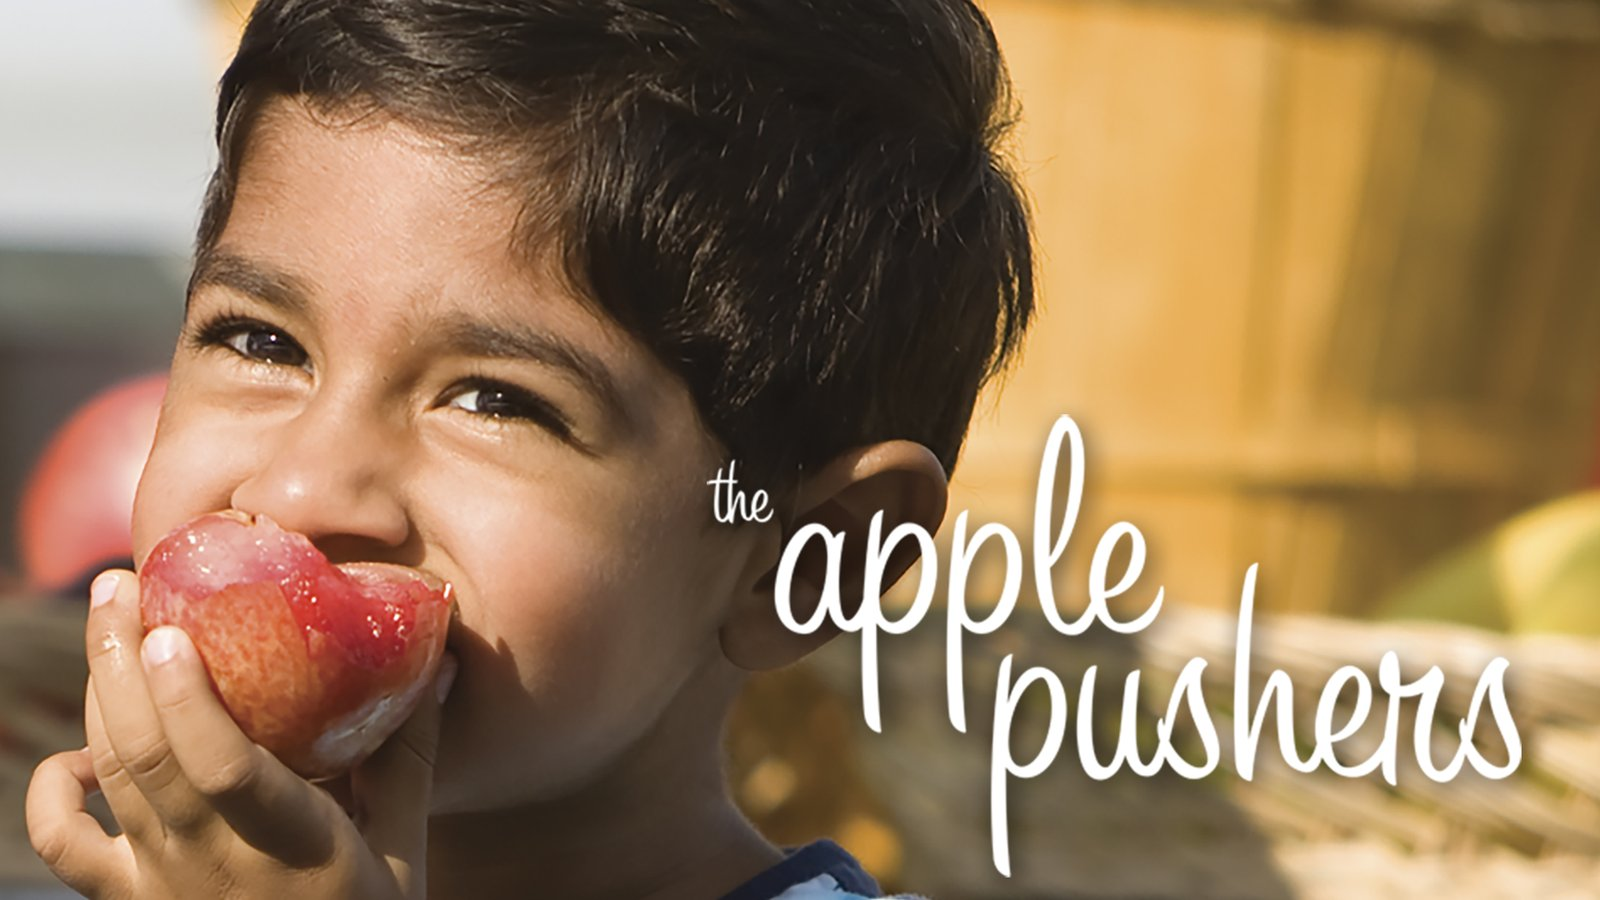 The Apple Pushers - Five Immigrant Street Vendors Bring Fresh Fruit to New York City